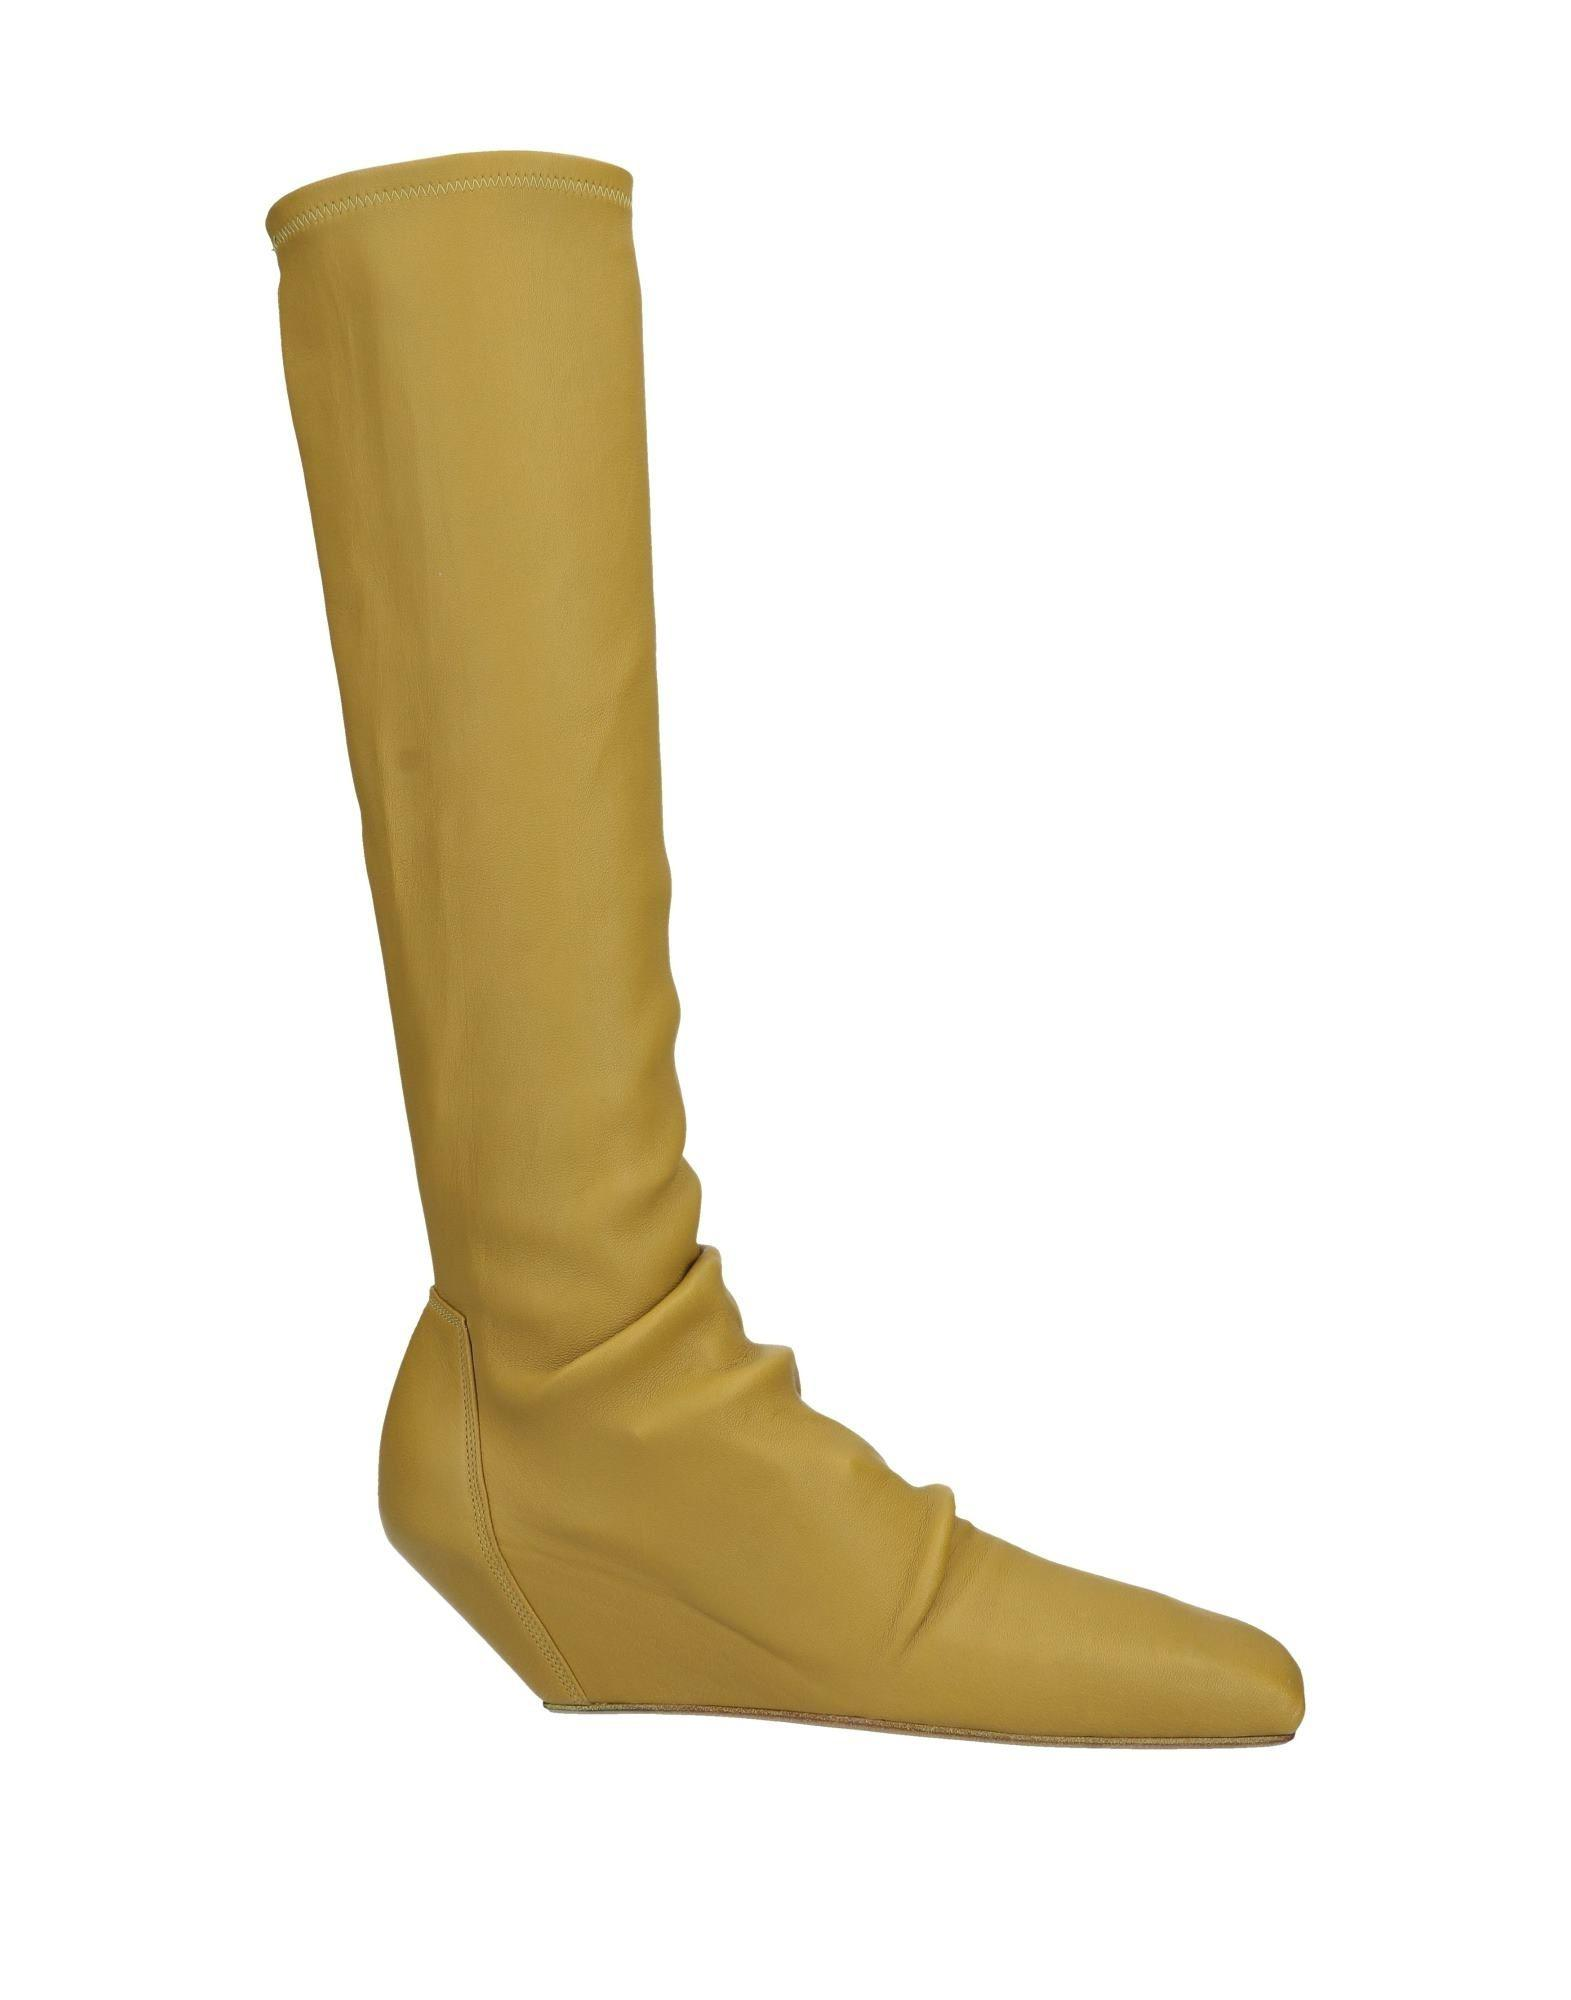 8545c24c96f Lyst - Rick Owens Boots in Green